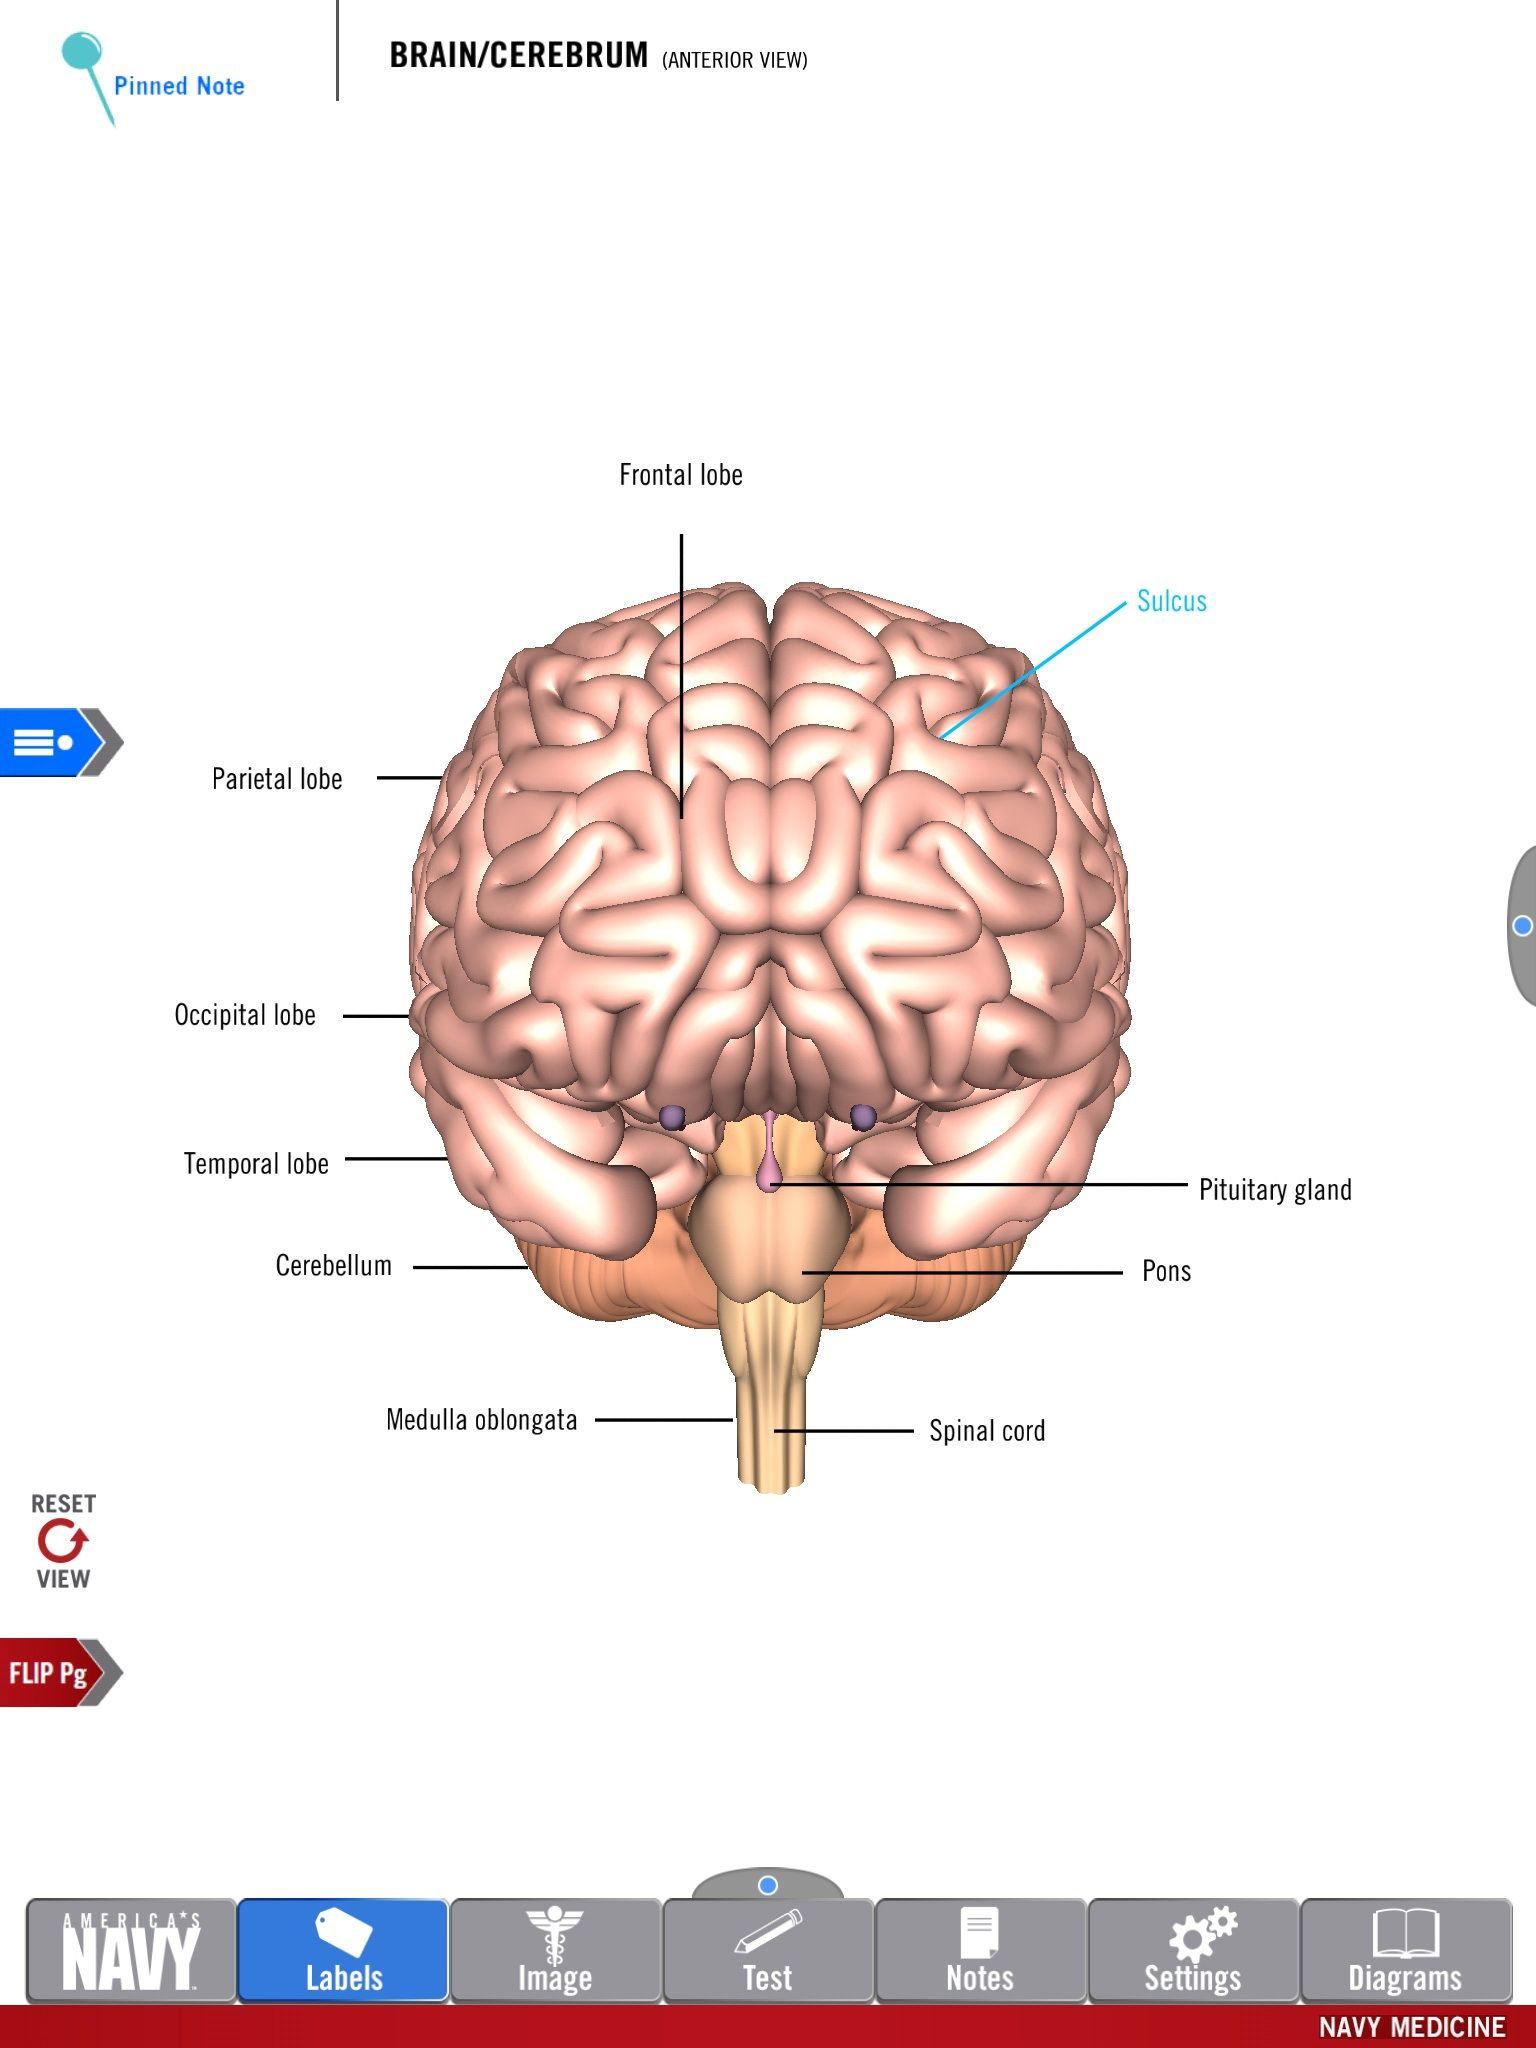 diagram of the brain cerebrum from the free anatomy study guide app by america s navy includes high res 3 d diagrams navy usnavy americasnavy navy  [ 1536 x 2048 Pixel ]